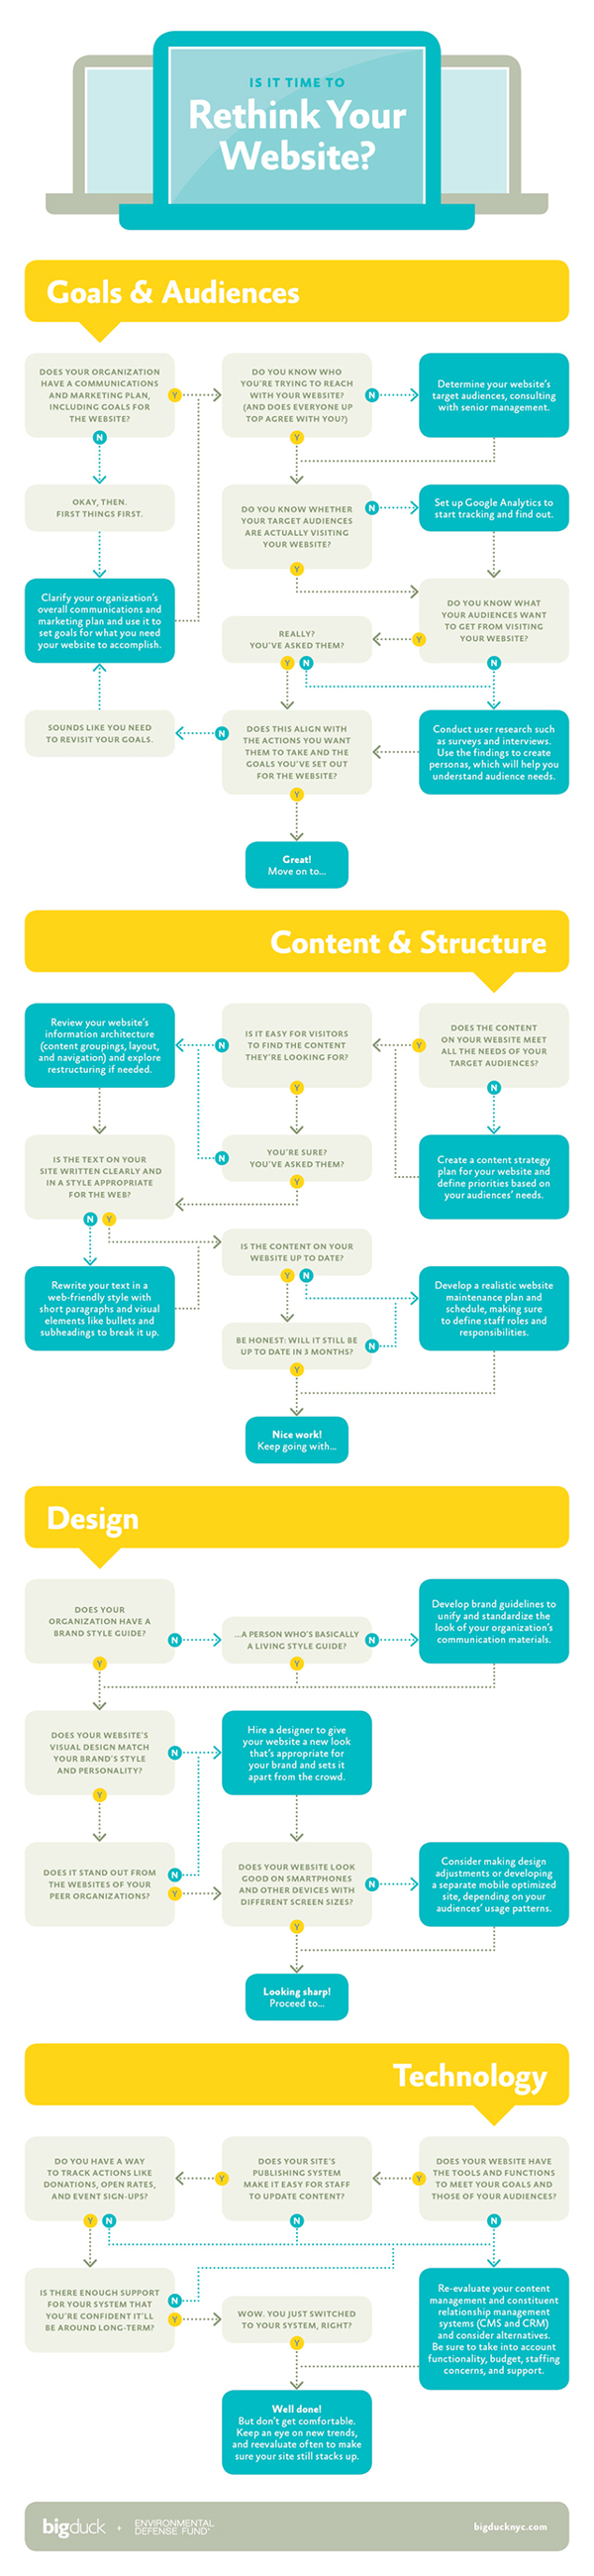 Is It Time to Rethink Your Website Here are 20+ Questions You Must Ask Yourself